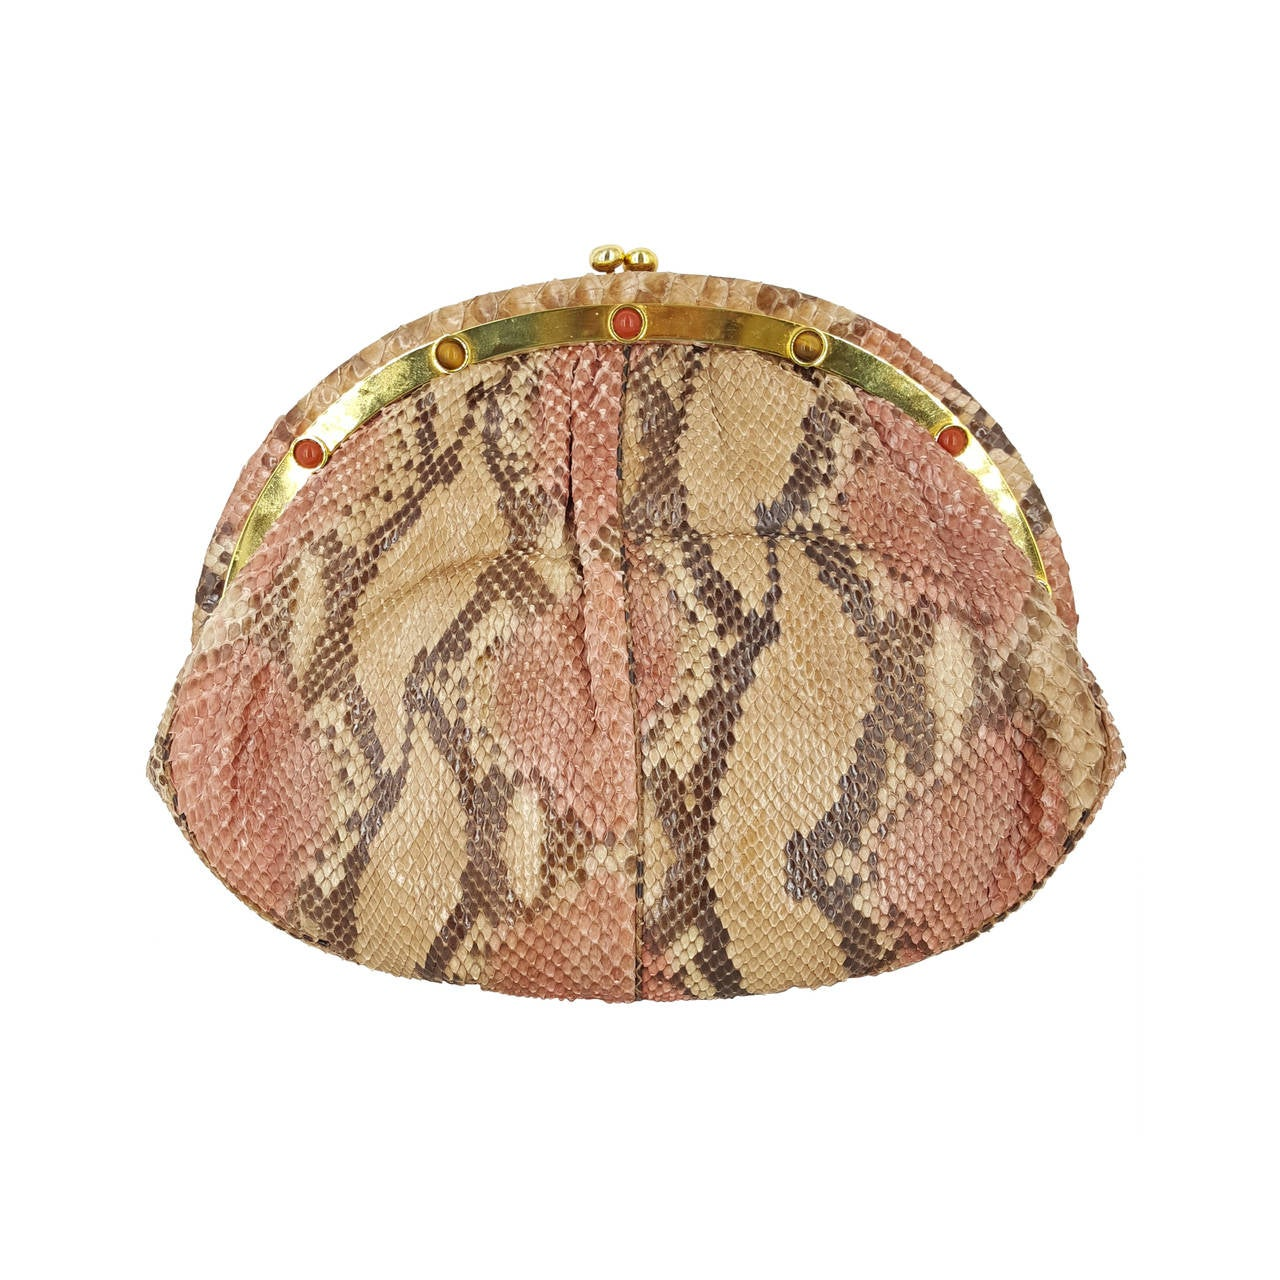 Judith Leiber Clutch/Shoulder Bag in Tan, Brown, And Pink Python For Sale